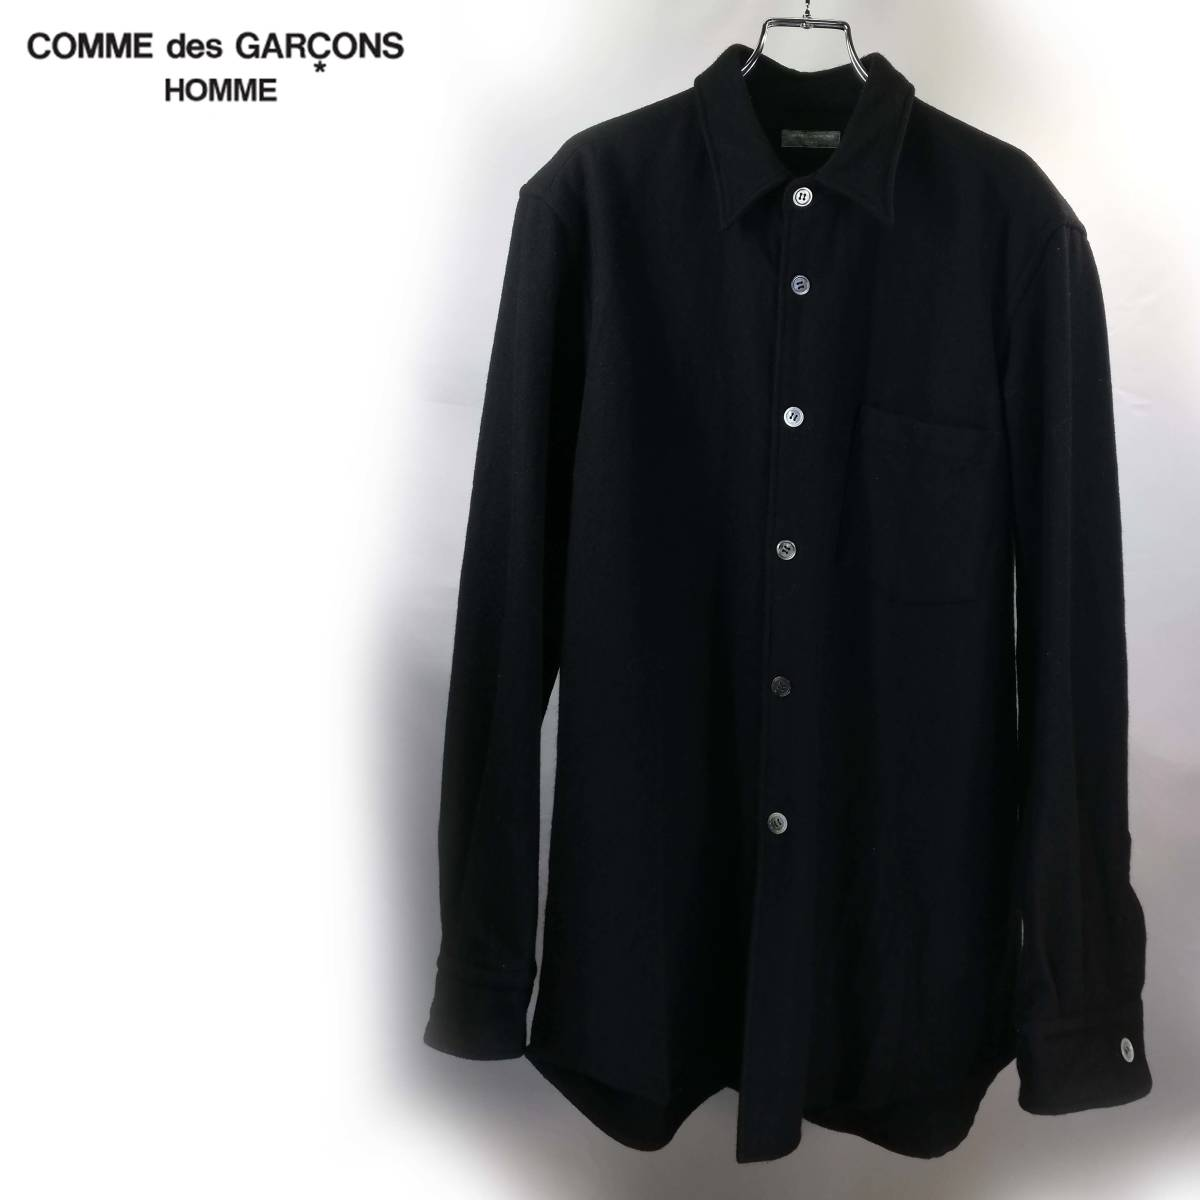 COMME des GARCONS HOMME ウールシャツ 2001 SS